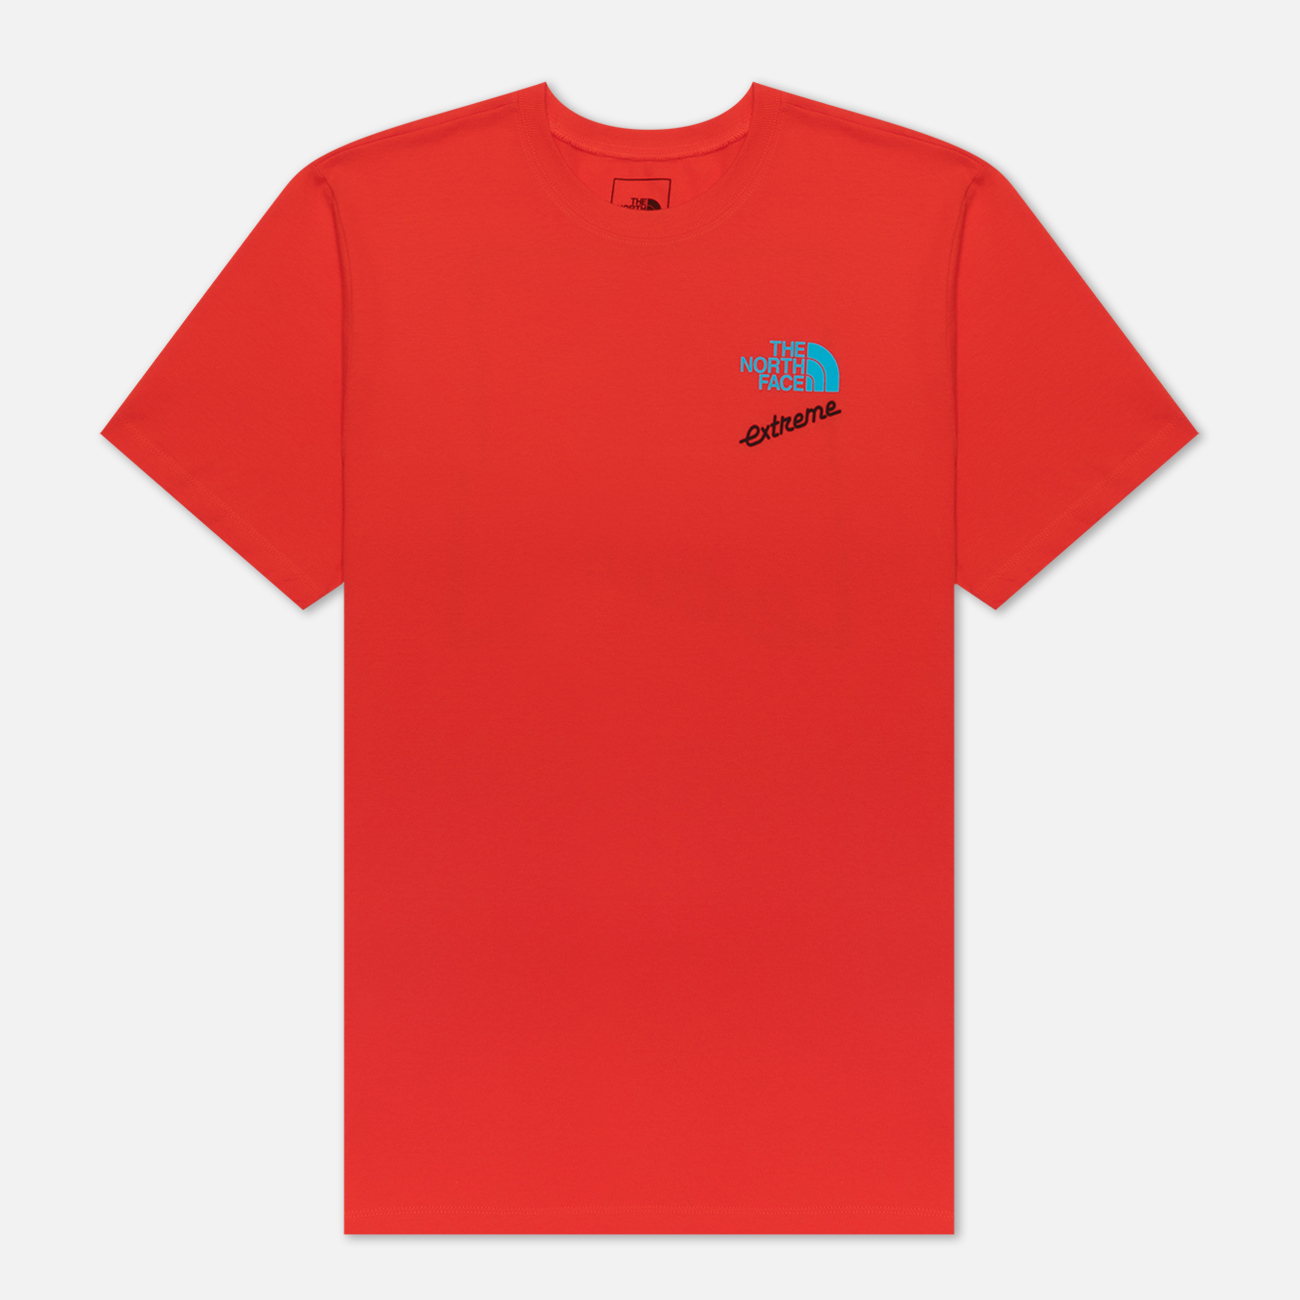 Мужская футболка The North Face Xtreme Fiery Red